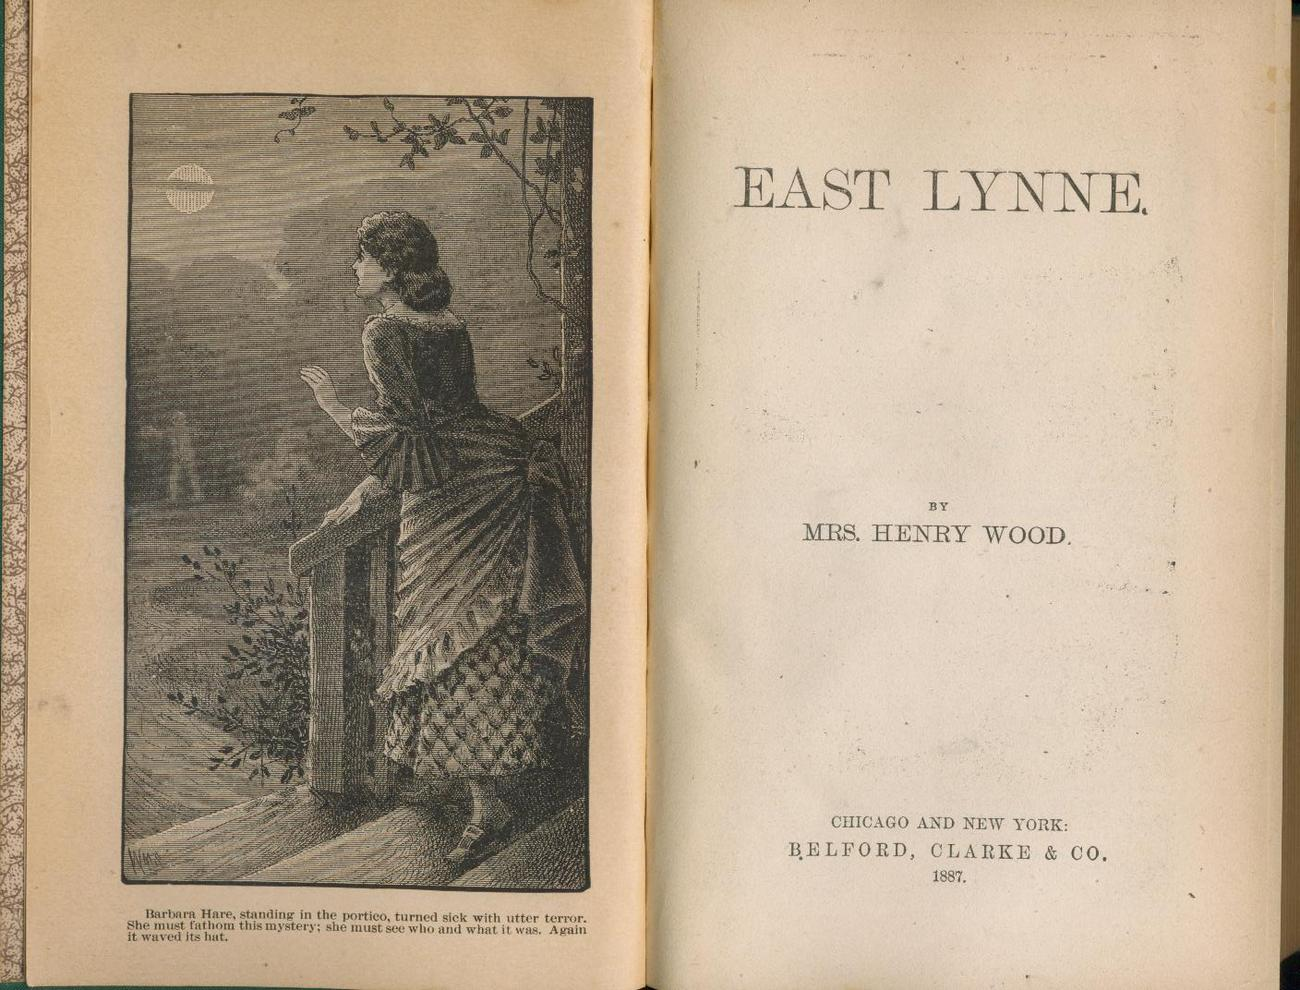 Mrs. Henry Wood - EAST LYNNE - 1887 edition of novel - scarce